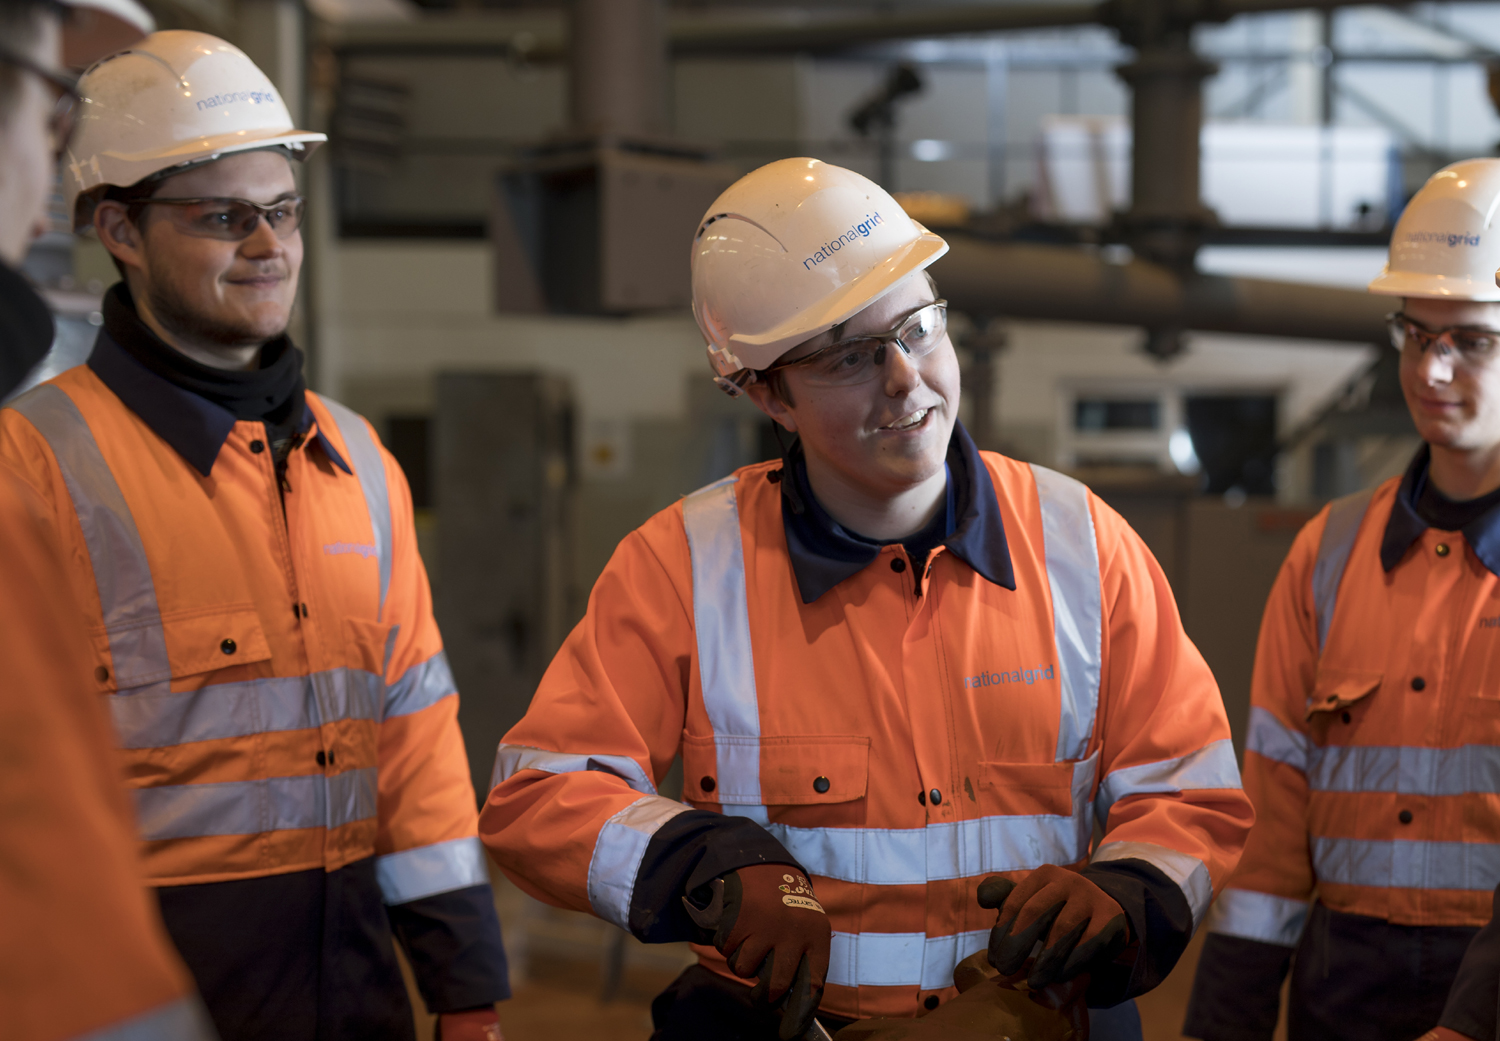 Nathan Hunt with fellow apprentices wearing PPE - used for the National Grid story 'Nathan Hunt: the apprentice with energy'